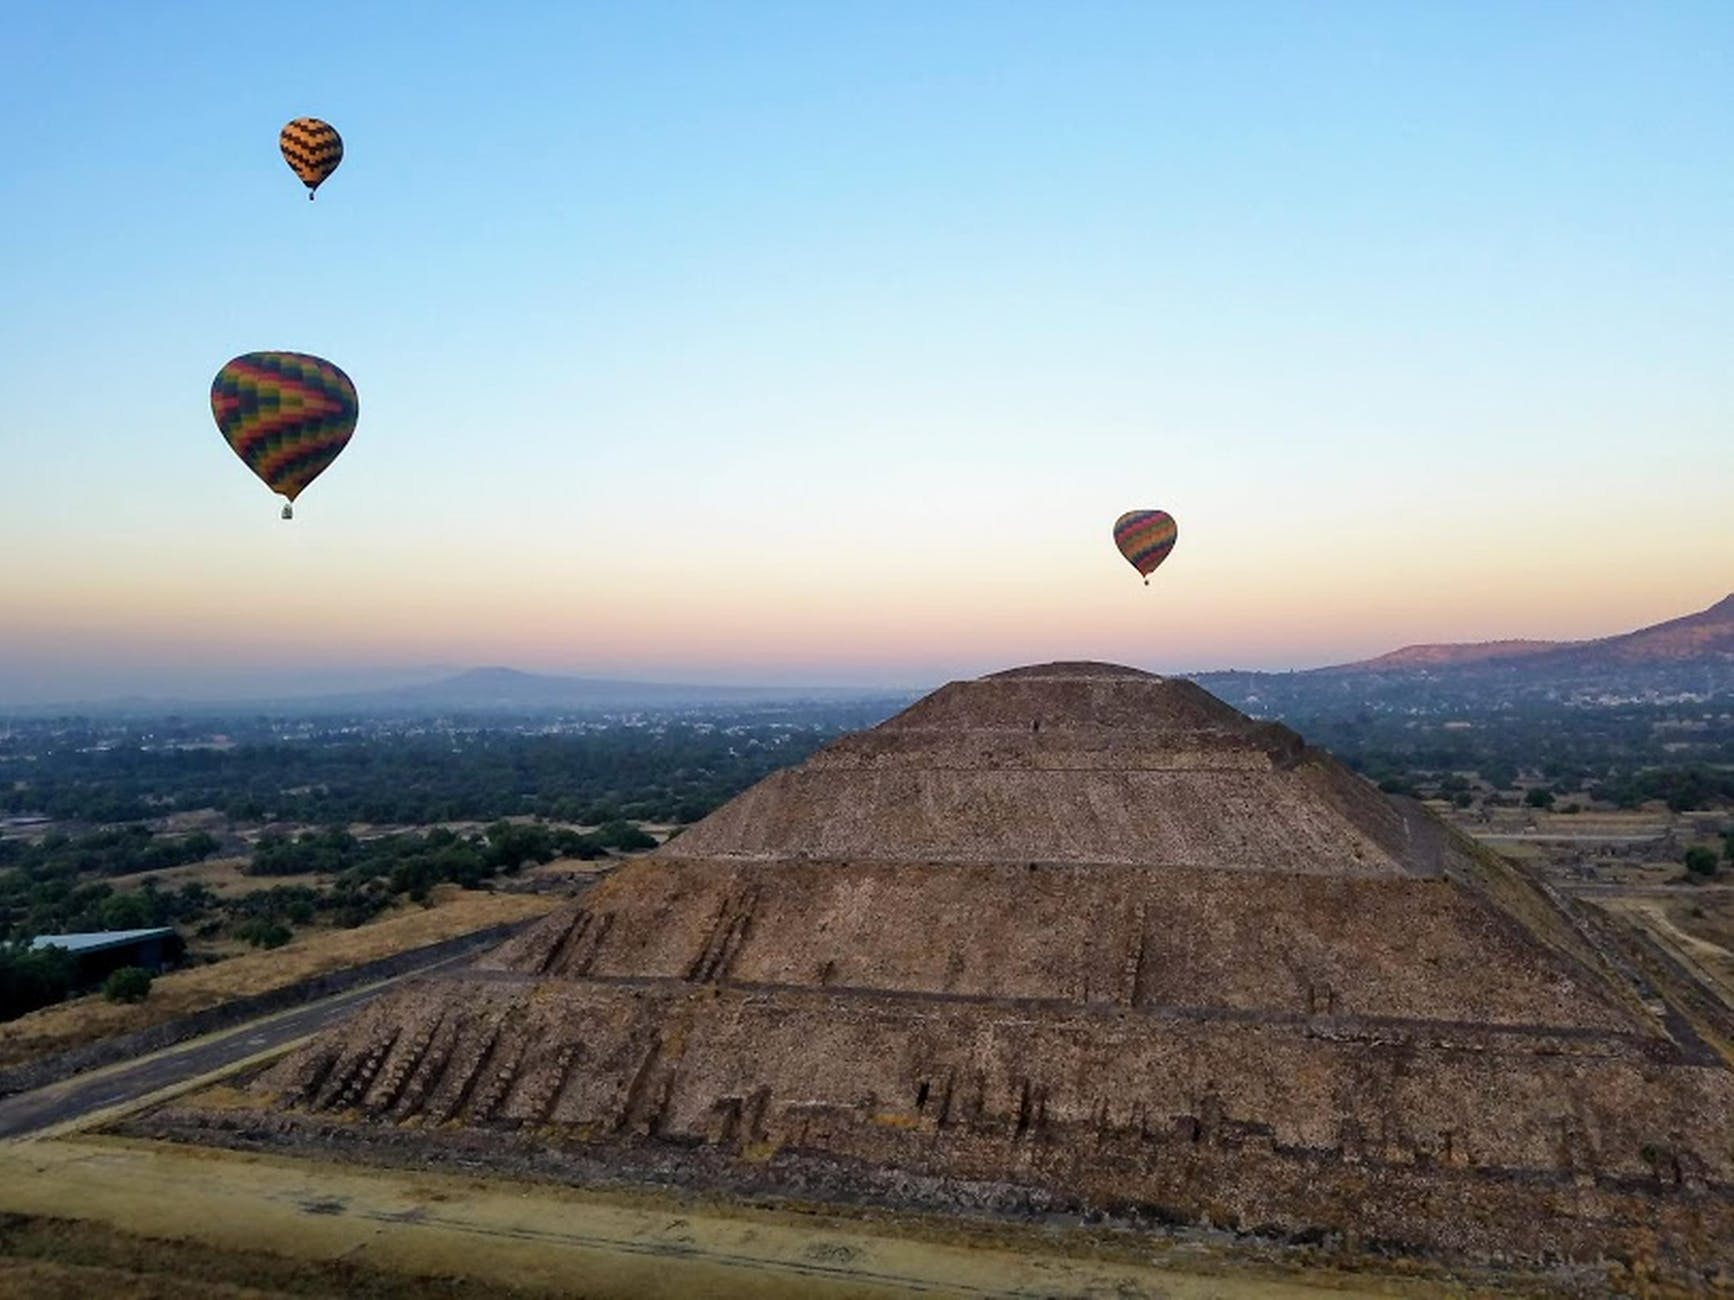 ancient pyramid of sun under flying air balloons in teotihuacan